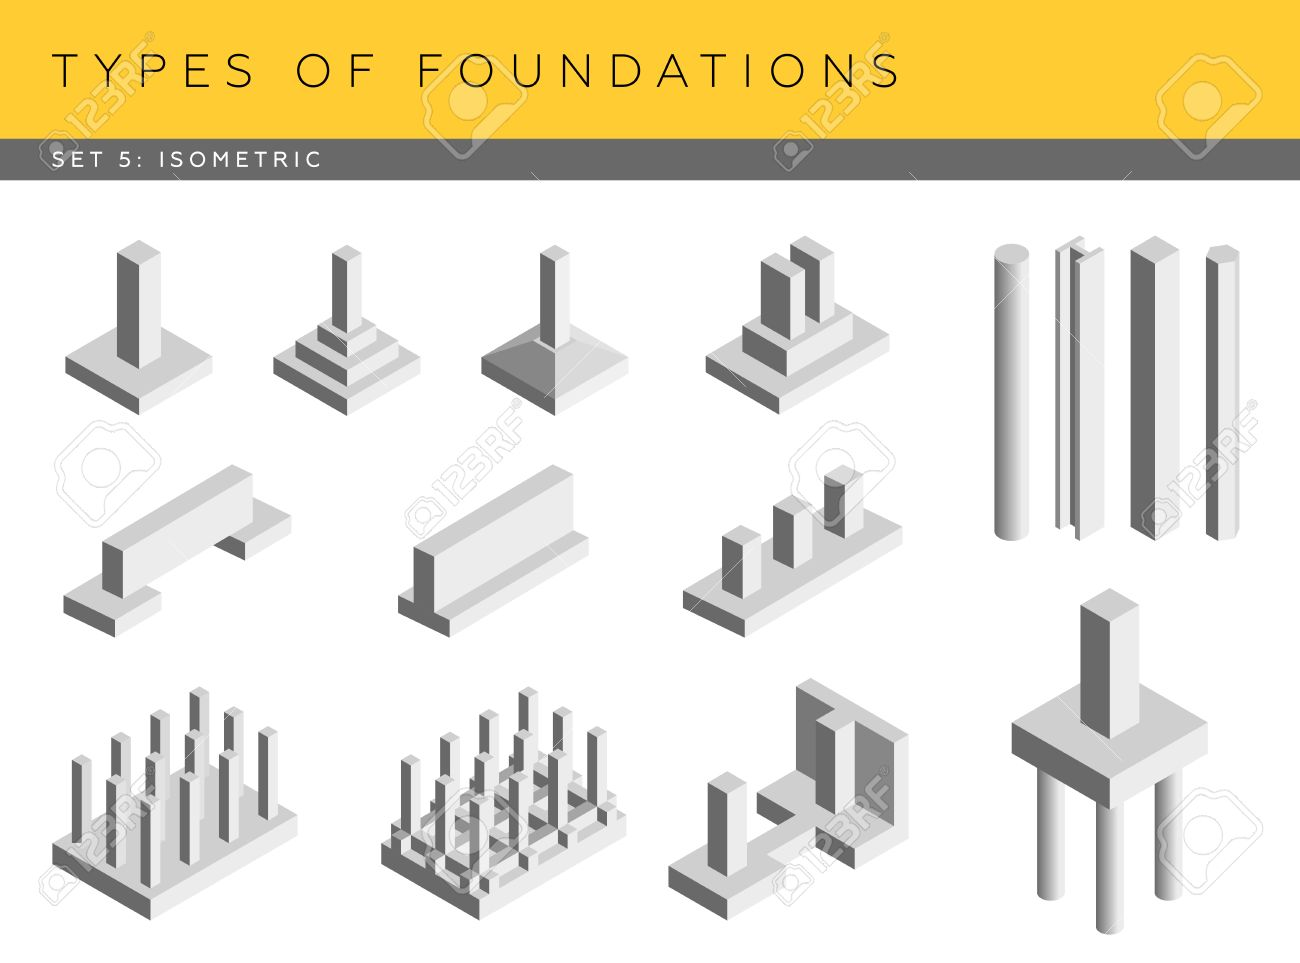 Types of foundations set of vector architectural blueprints types of foundations set of vector architectural blueprints isometric view stock vector 46024472 ccuart Image collections